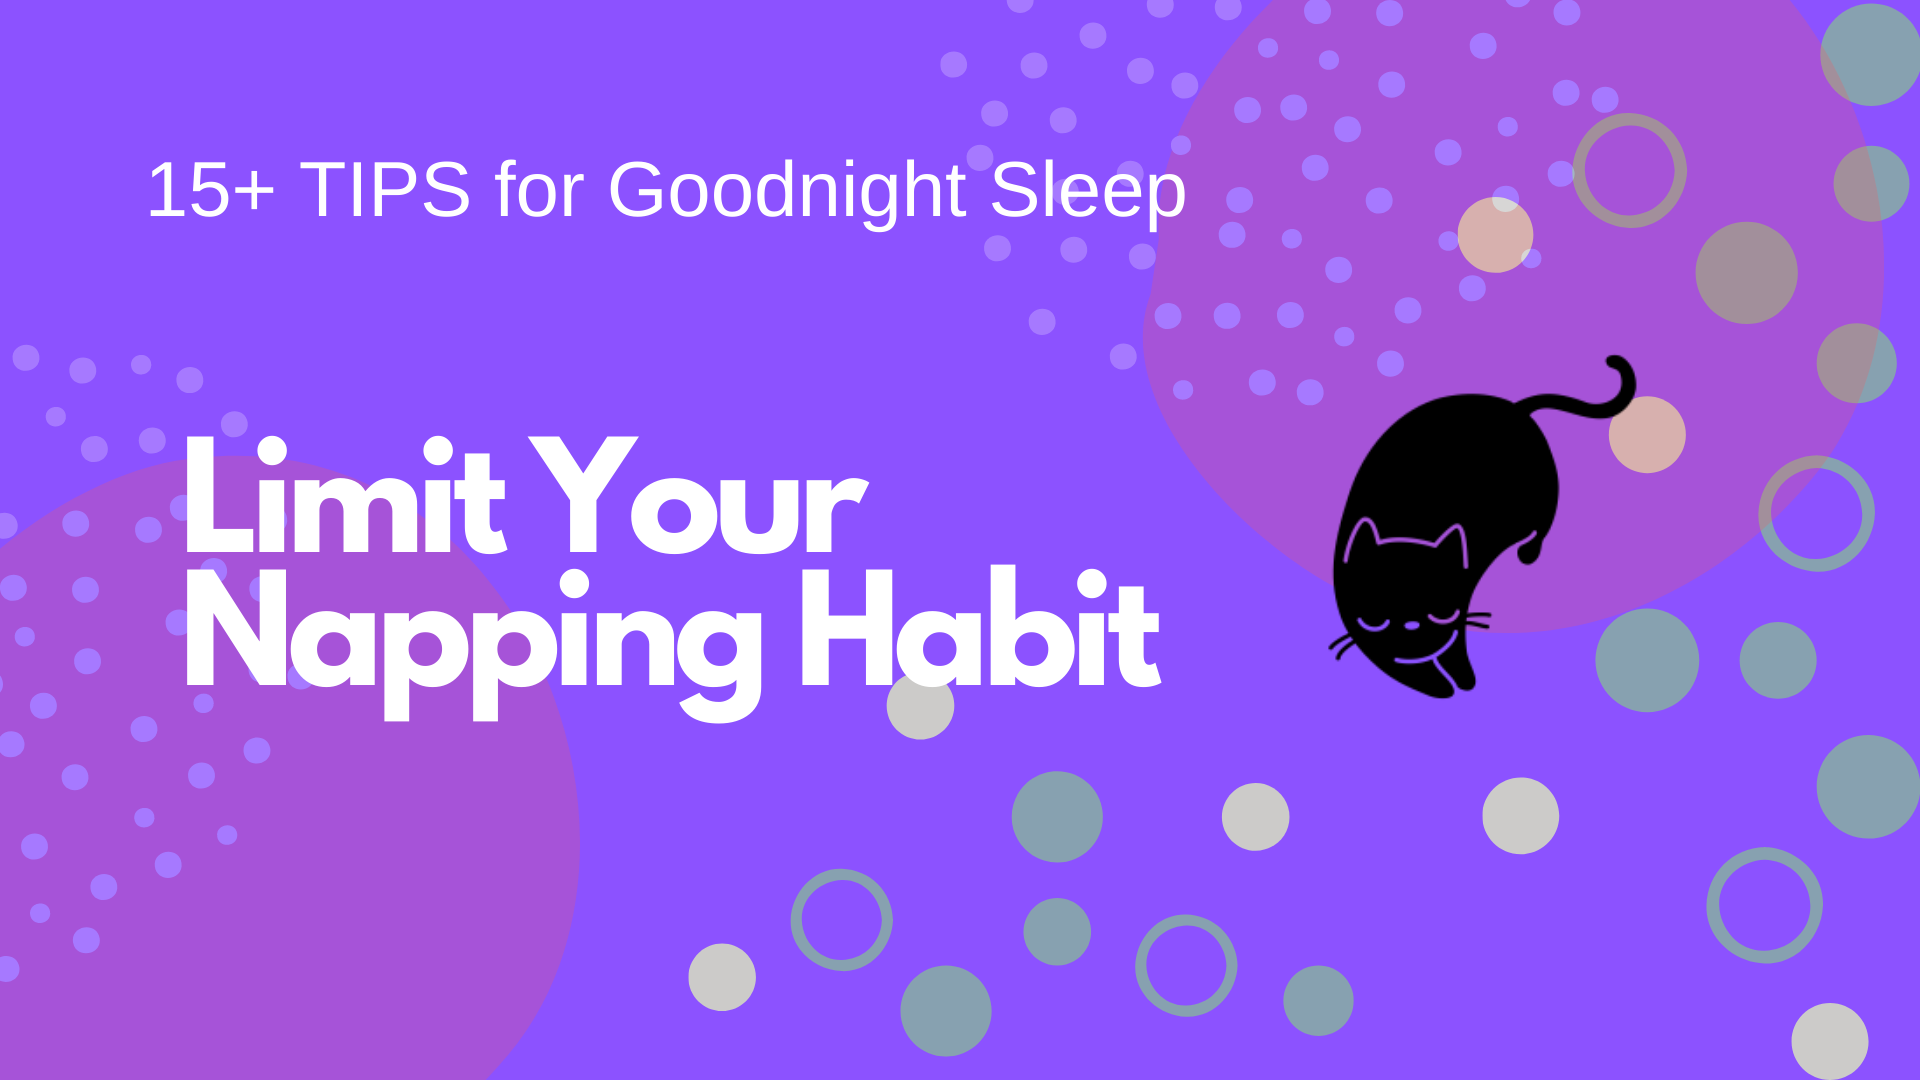 Limit Your Napping Habit